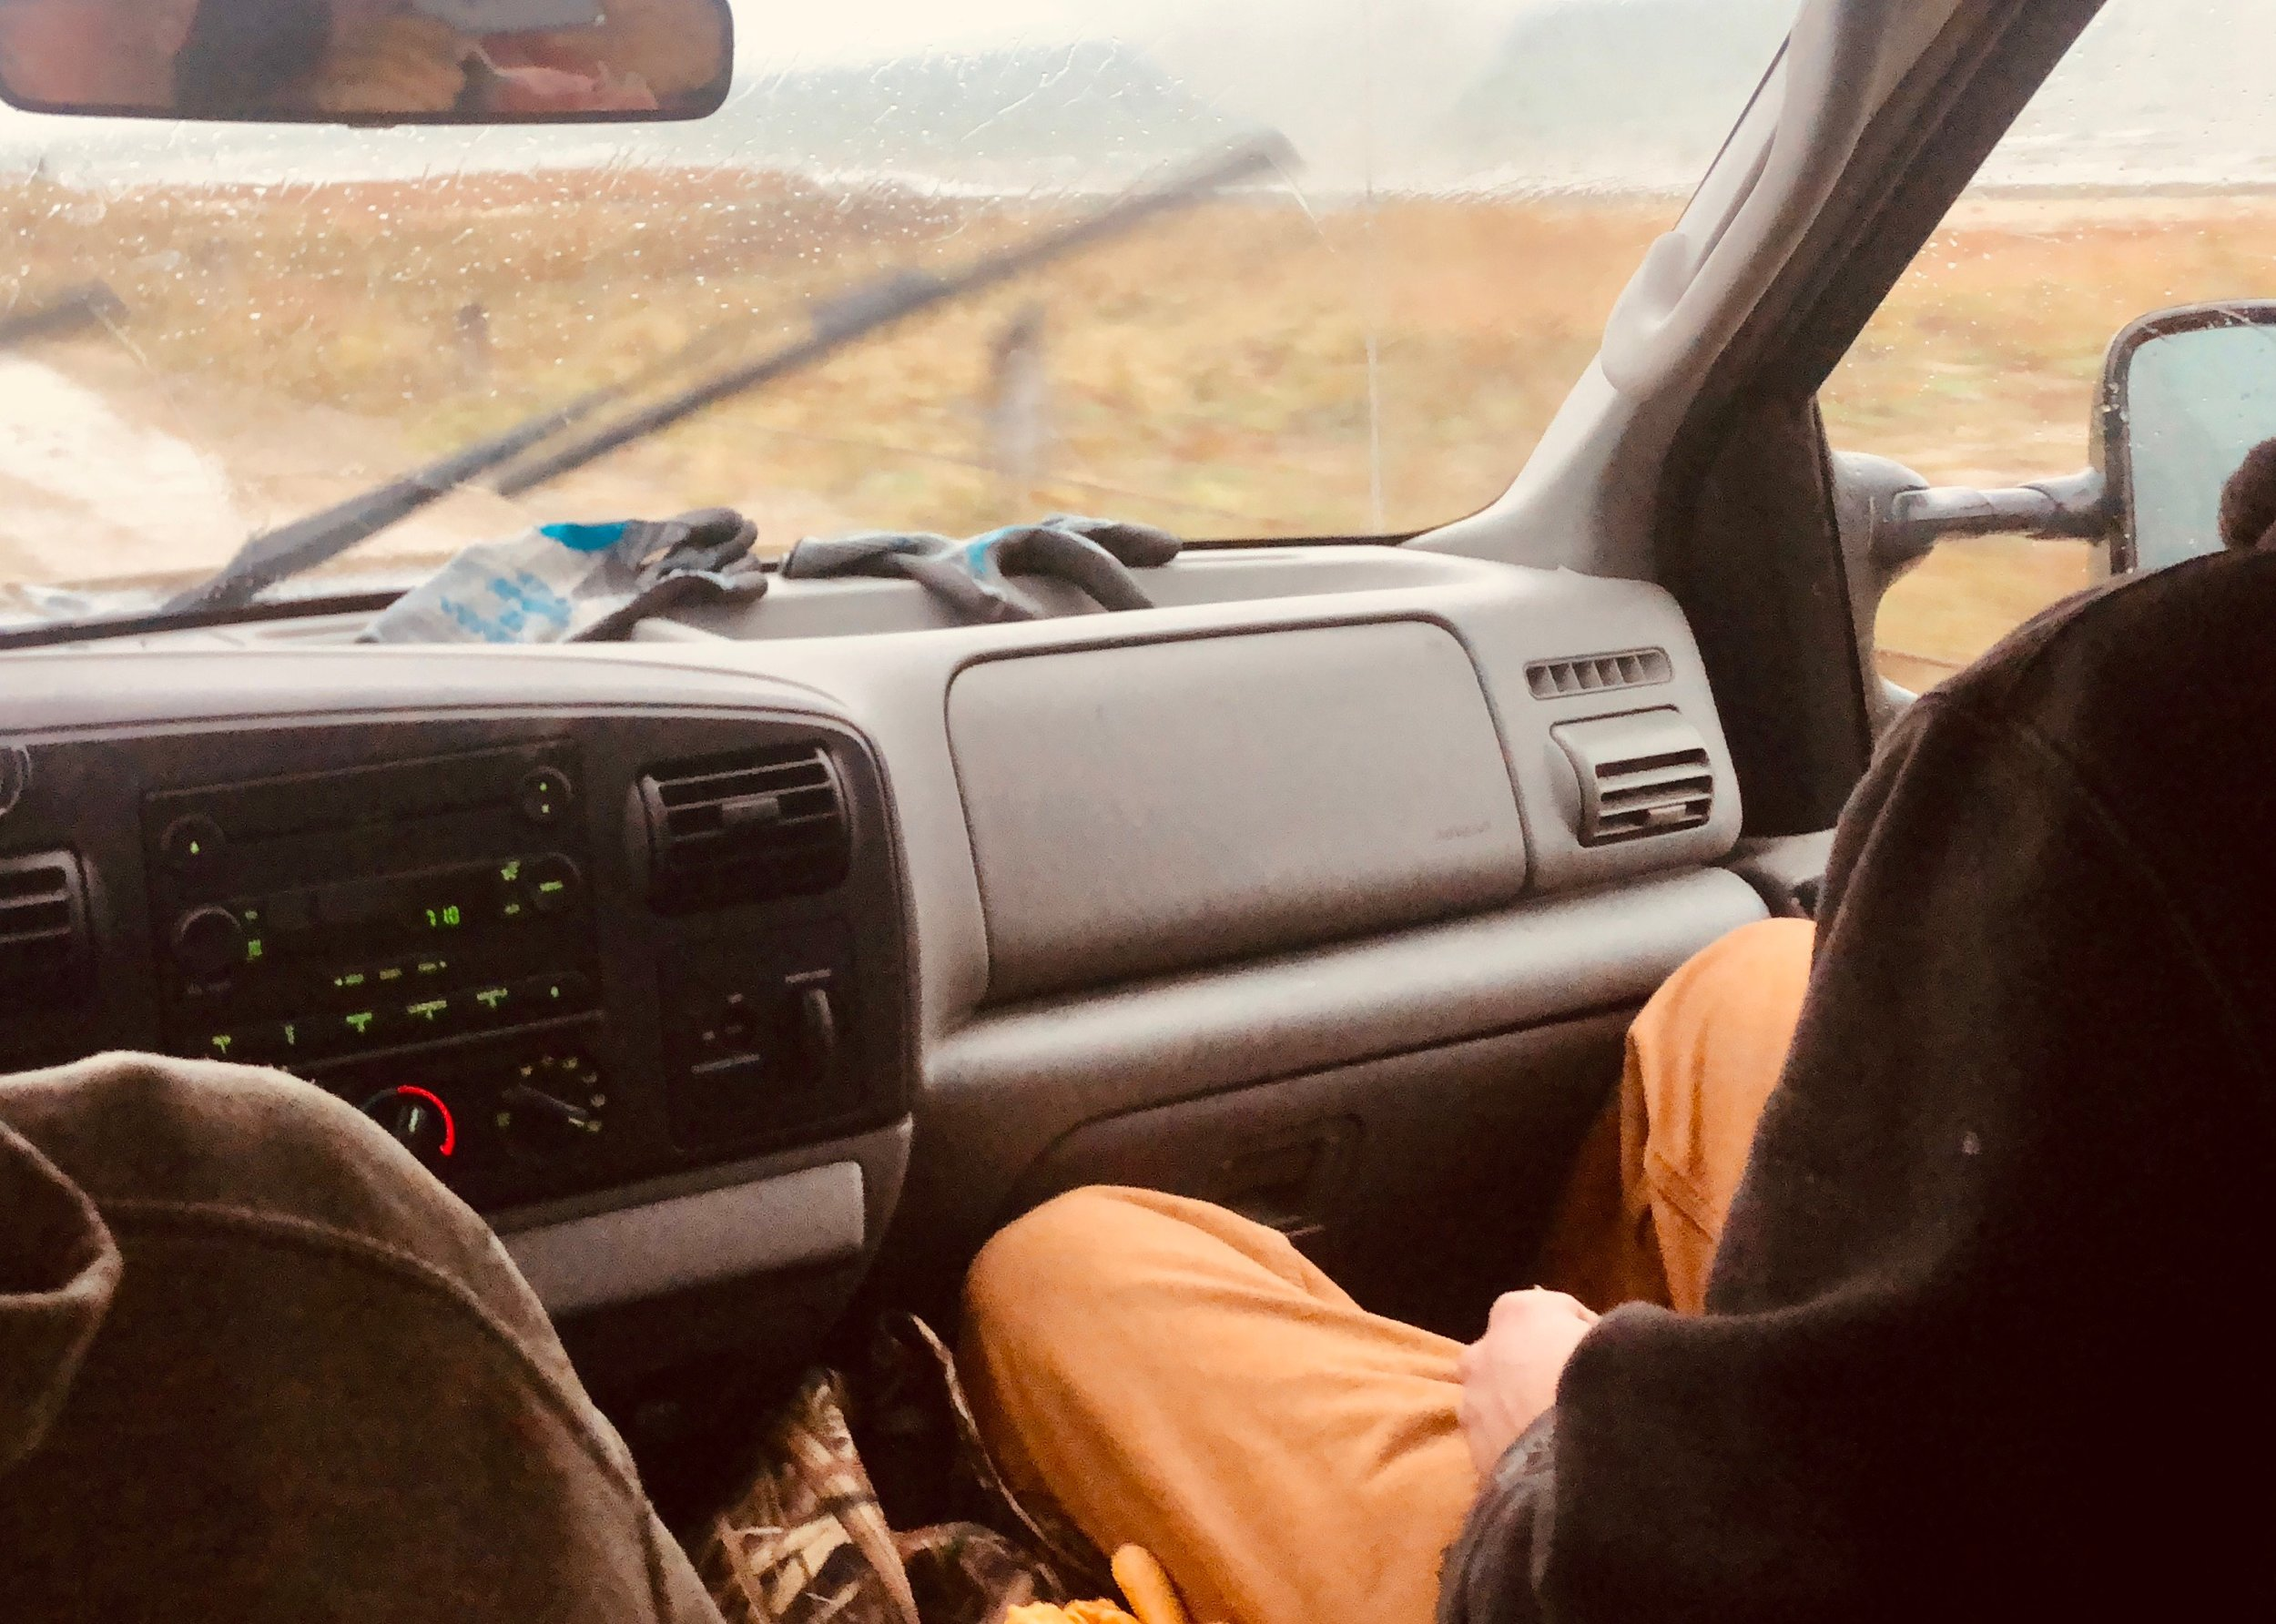 This weeks were a daily bumpy ride out to the Saquish lease, with Joe Rankin behind the wheel negotiating every pothole. We experienced consistently unsettled weather every day.